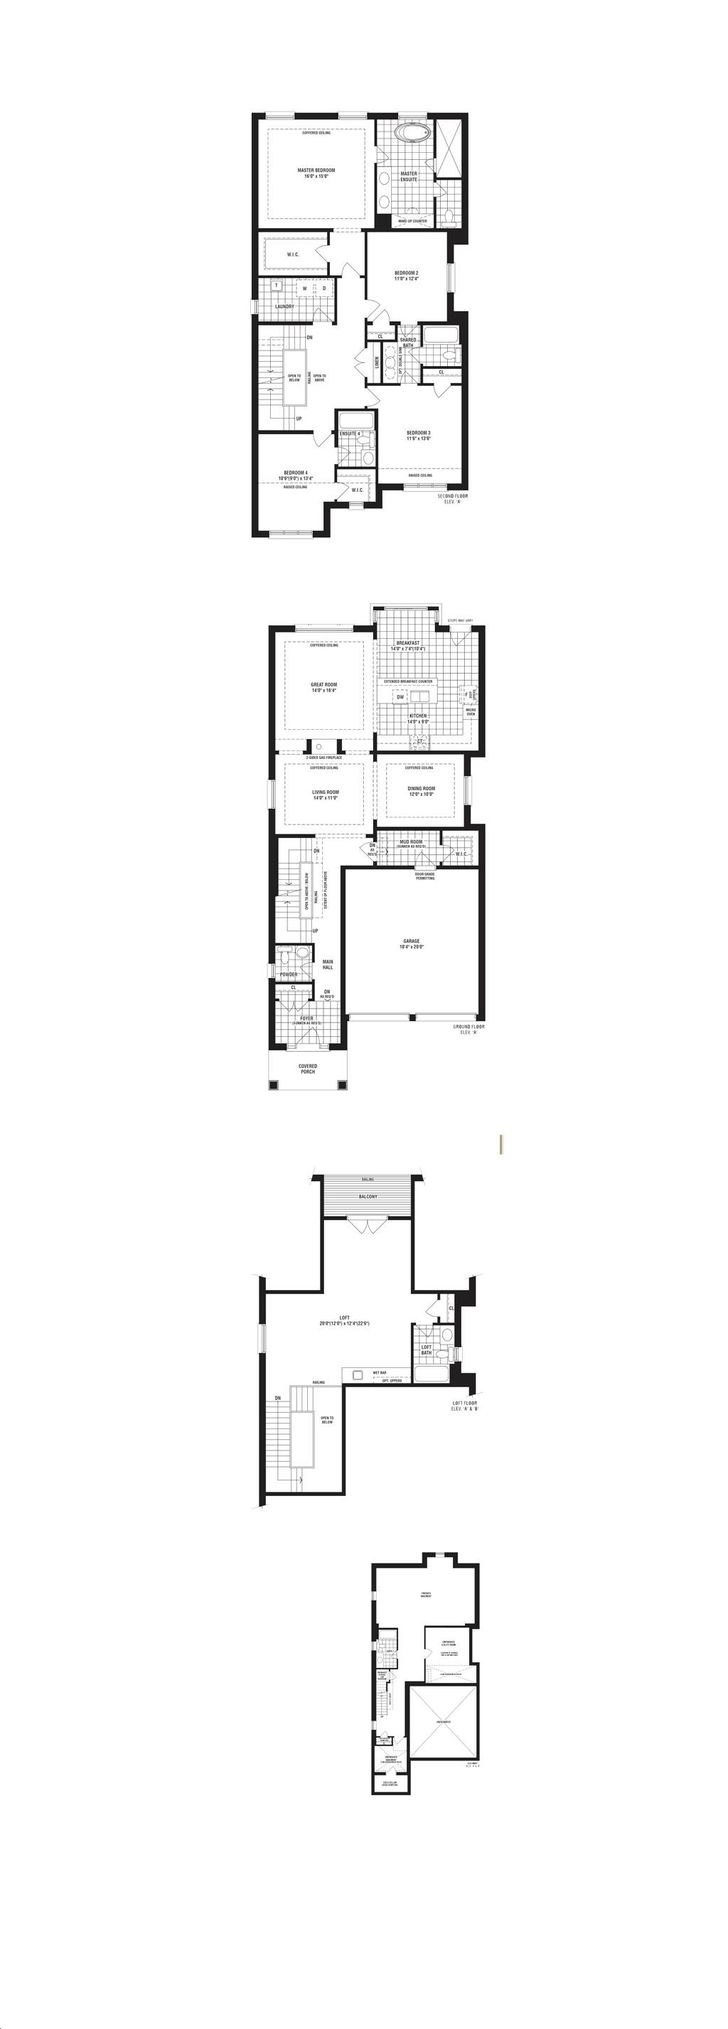 Observatory Hill By Conservatory Carina Floorplan 4 Bed 5 Bath